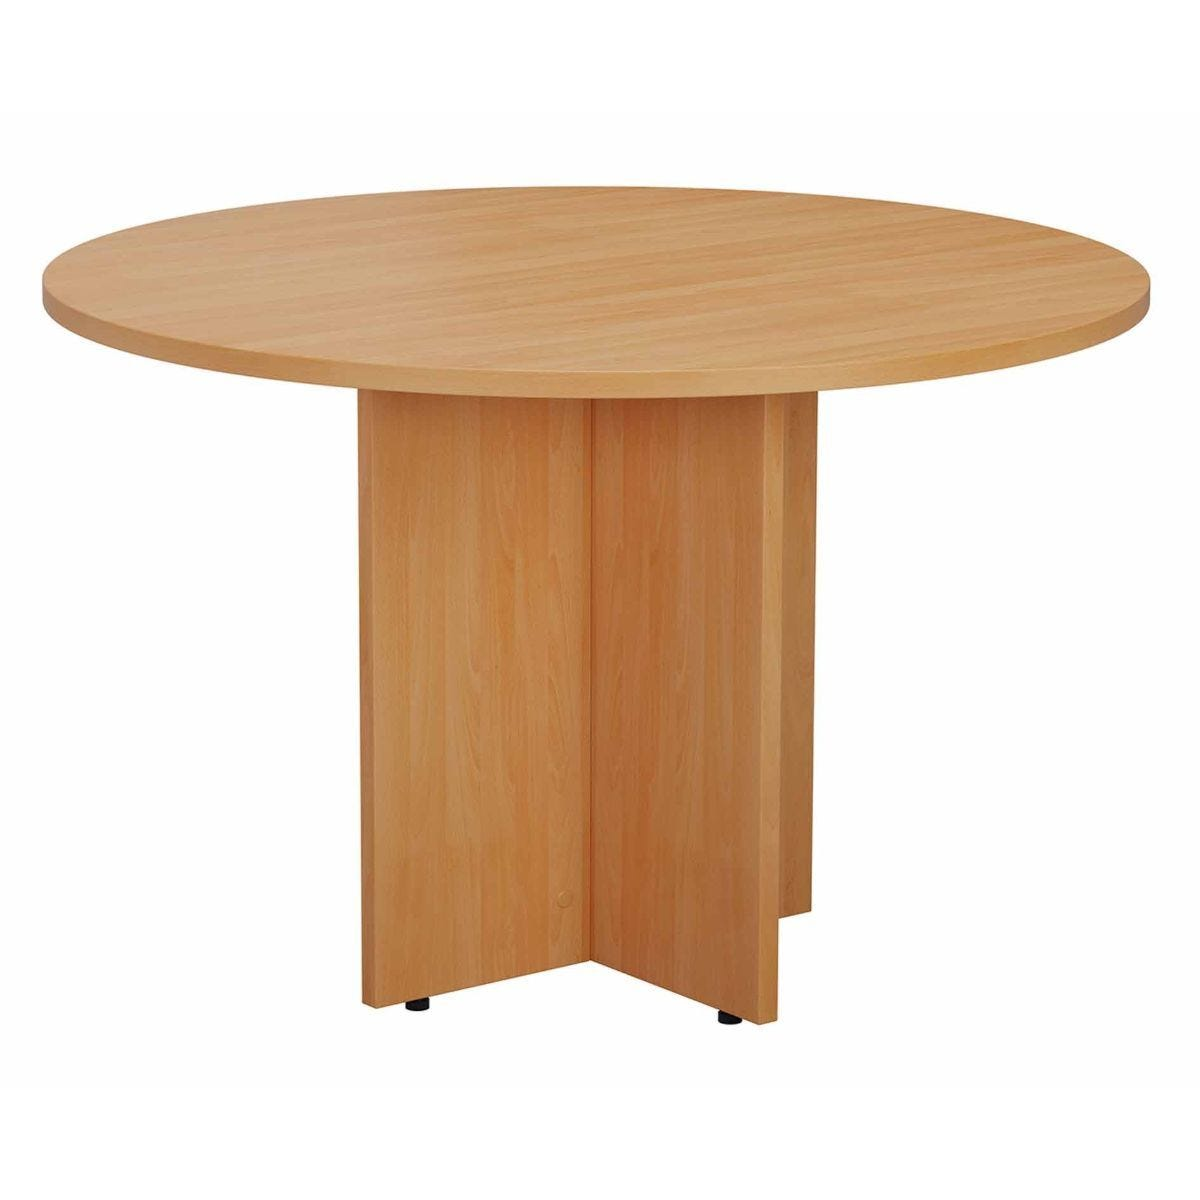 TC Office Round Meeting Table 1100mm